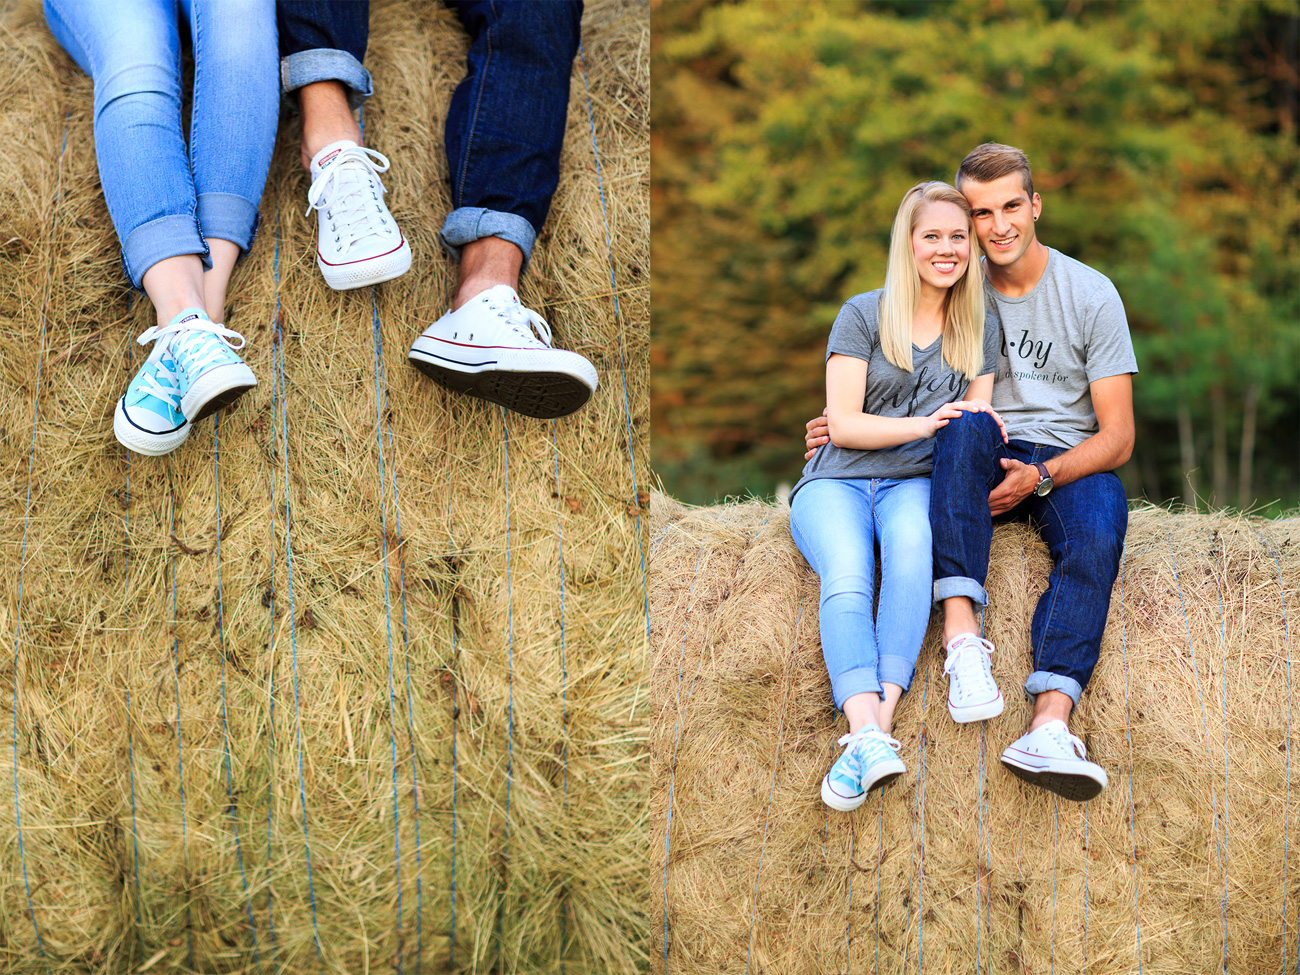 Quinn & Nathan -  Engagement & Wedding Photography - Rocky Mountain House, Alberta (11)